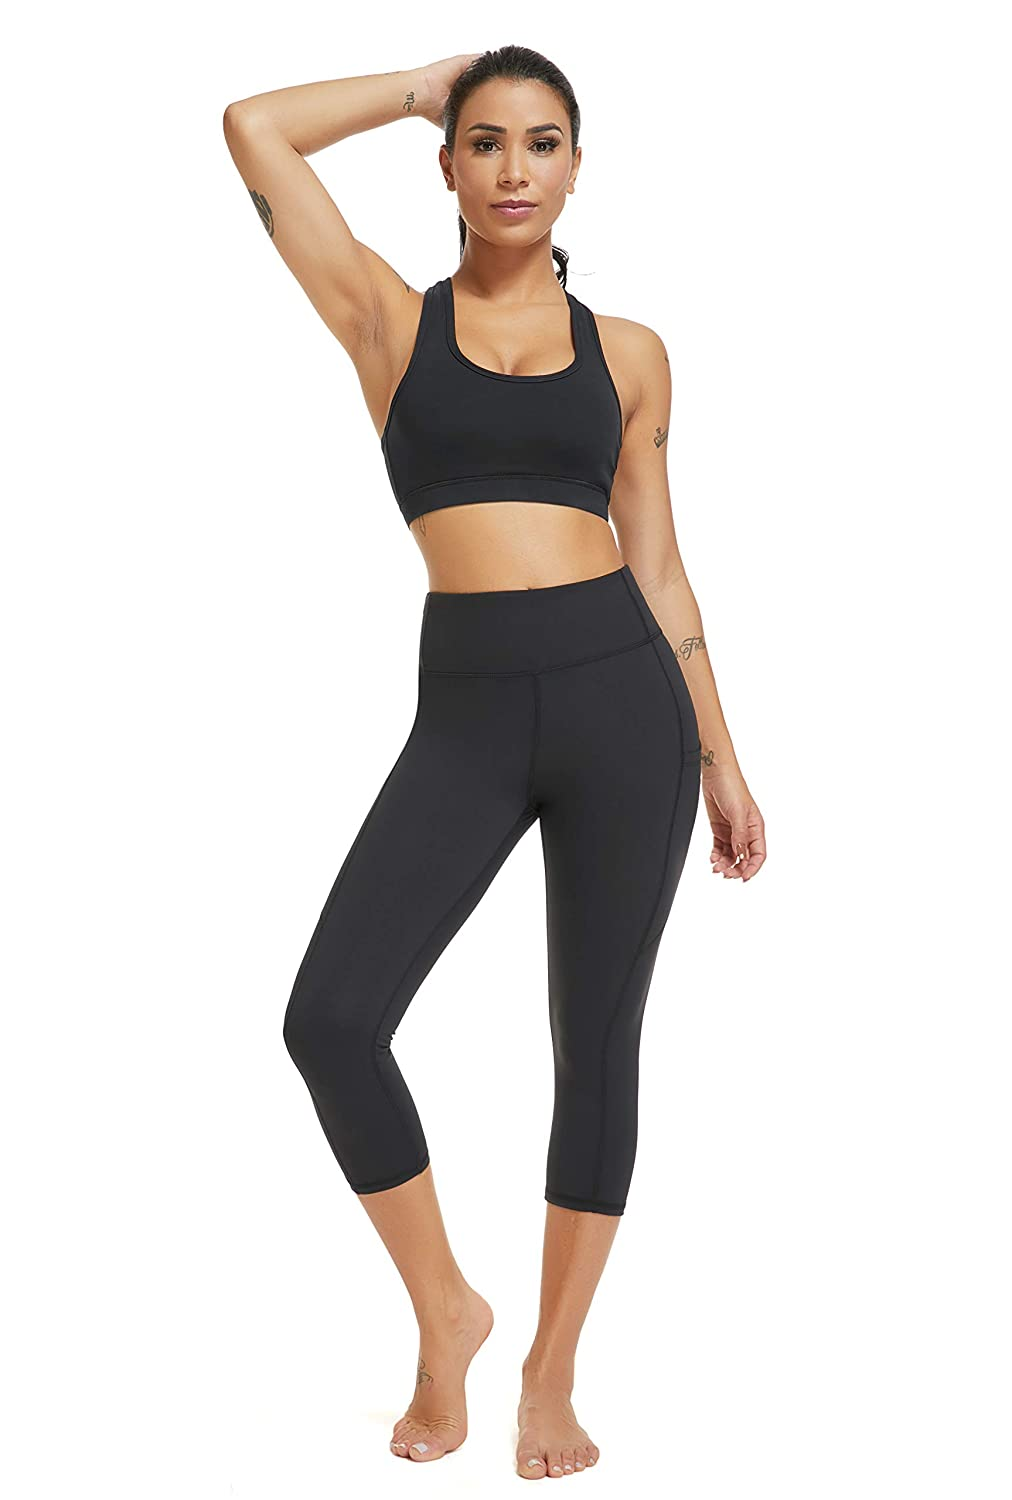 f1ef5cd52e987 Amazon.com: Womens High Waisted Yoga Pants - Olacia Black Workout Leggings  Athletic Capris 4-Way Stretch Tummy Control Running Pants with Pockets  Small: ...